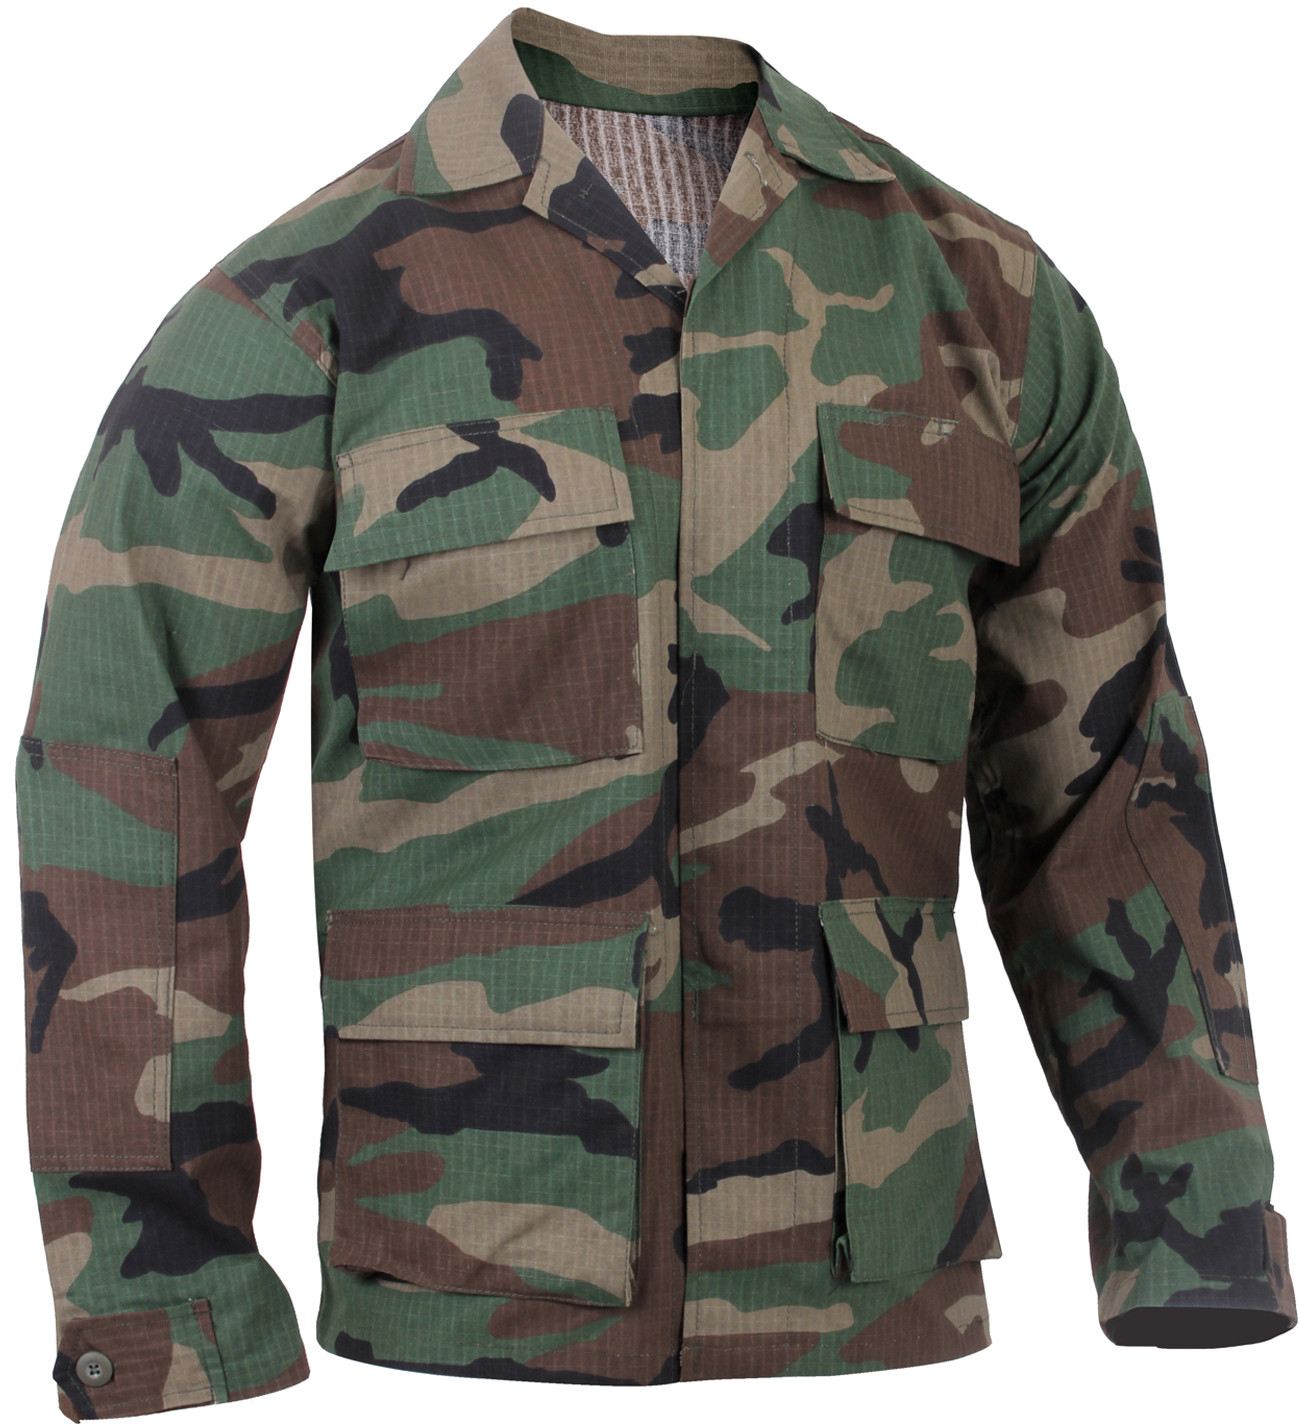 Woodland Camouflage Rip-Stop Military BDU Fatigue Shirt 0ed0aabb5d